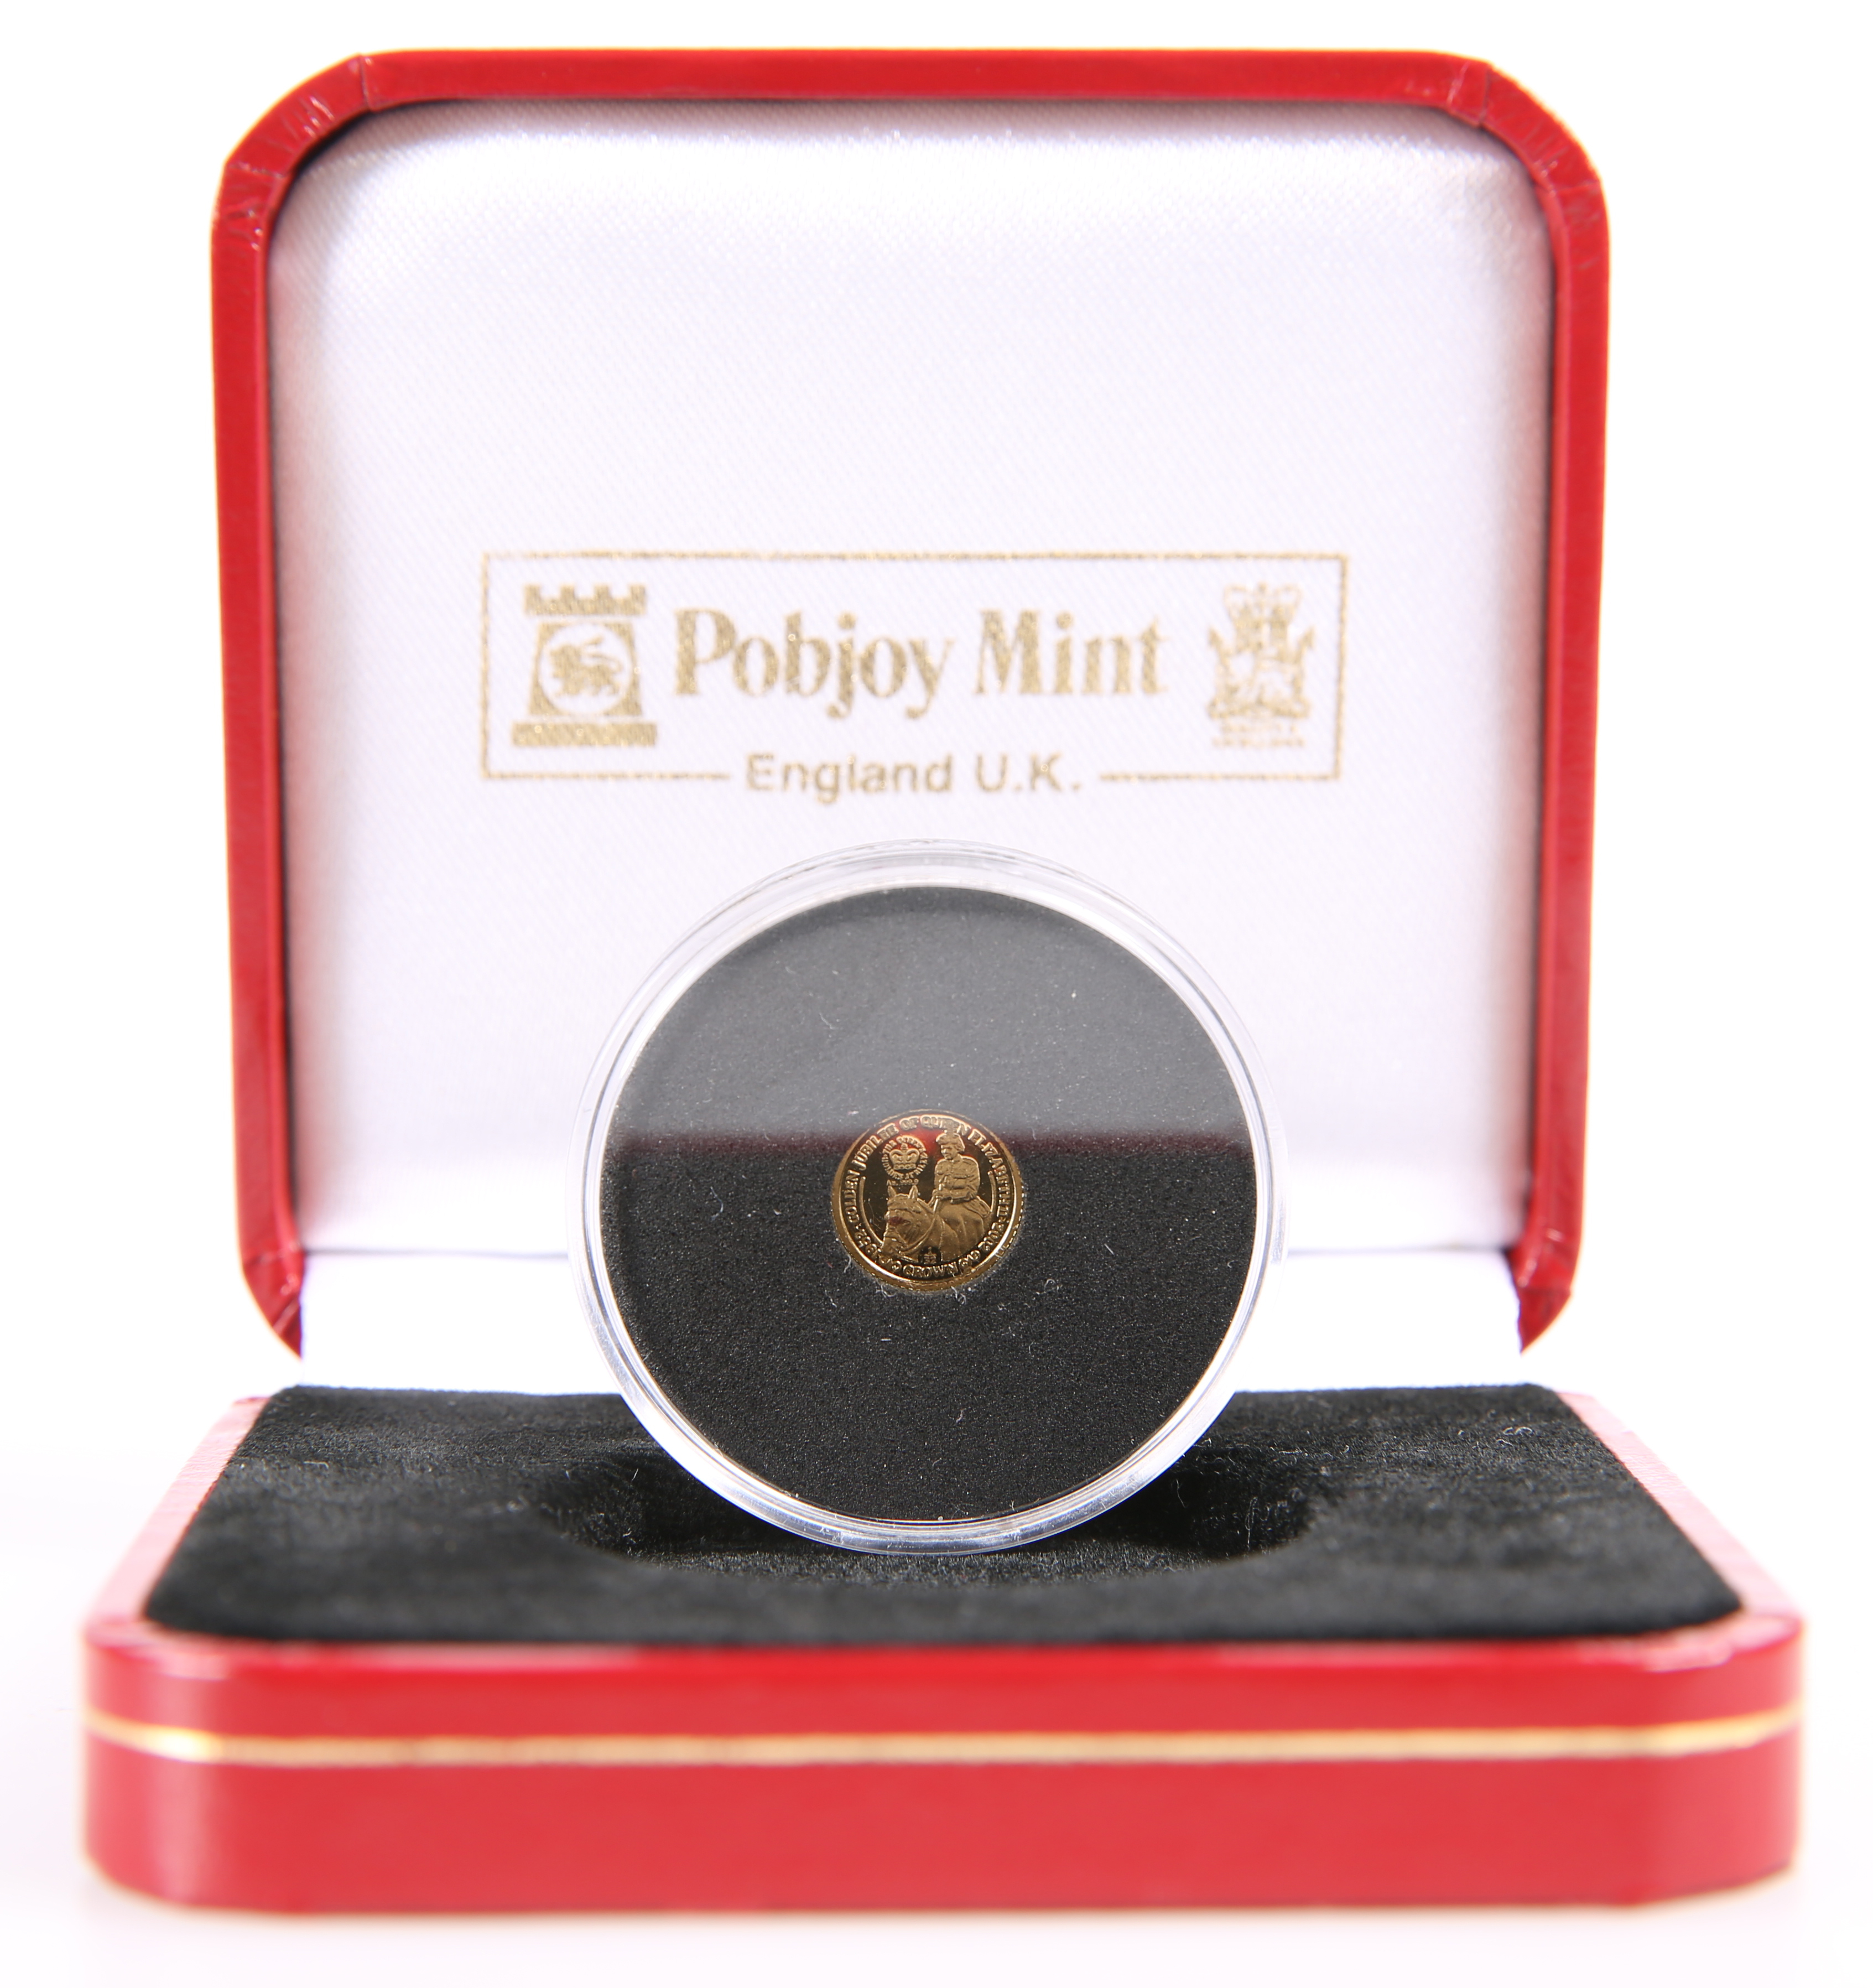 A QEII ISLE OF MAN 2002 GOLDEN JUBILEE 1/32 CROWN, in capsule and Pobjoy Mint case.